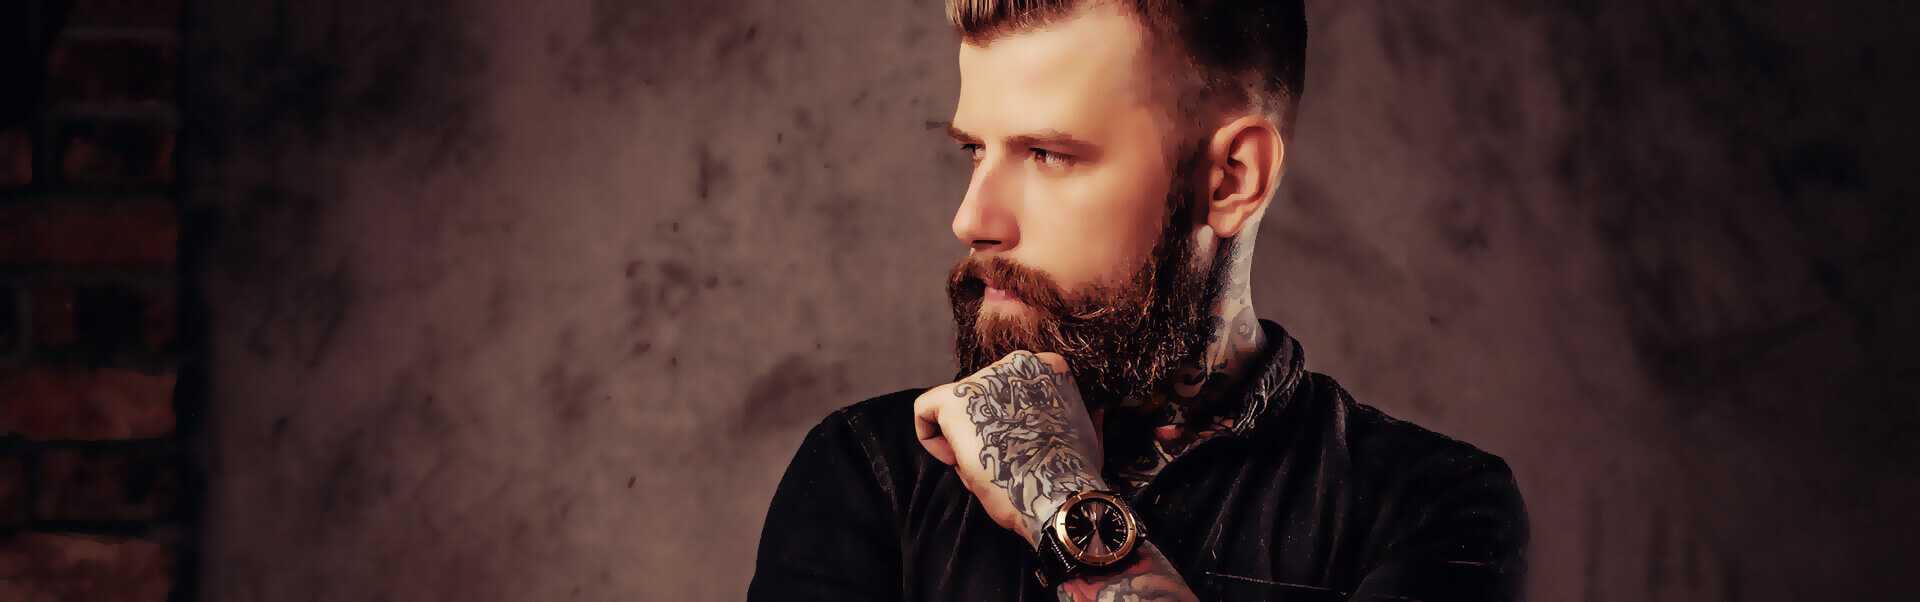 Tattoostudio Header Bild